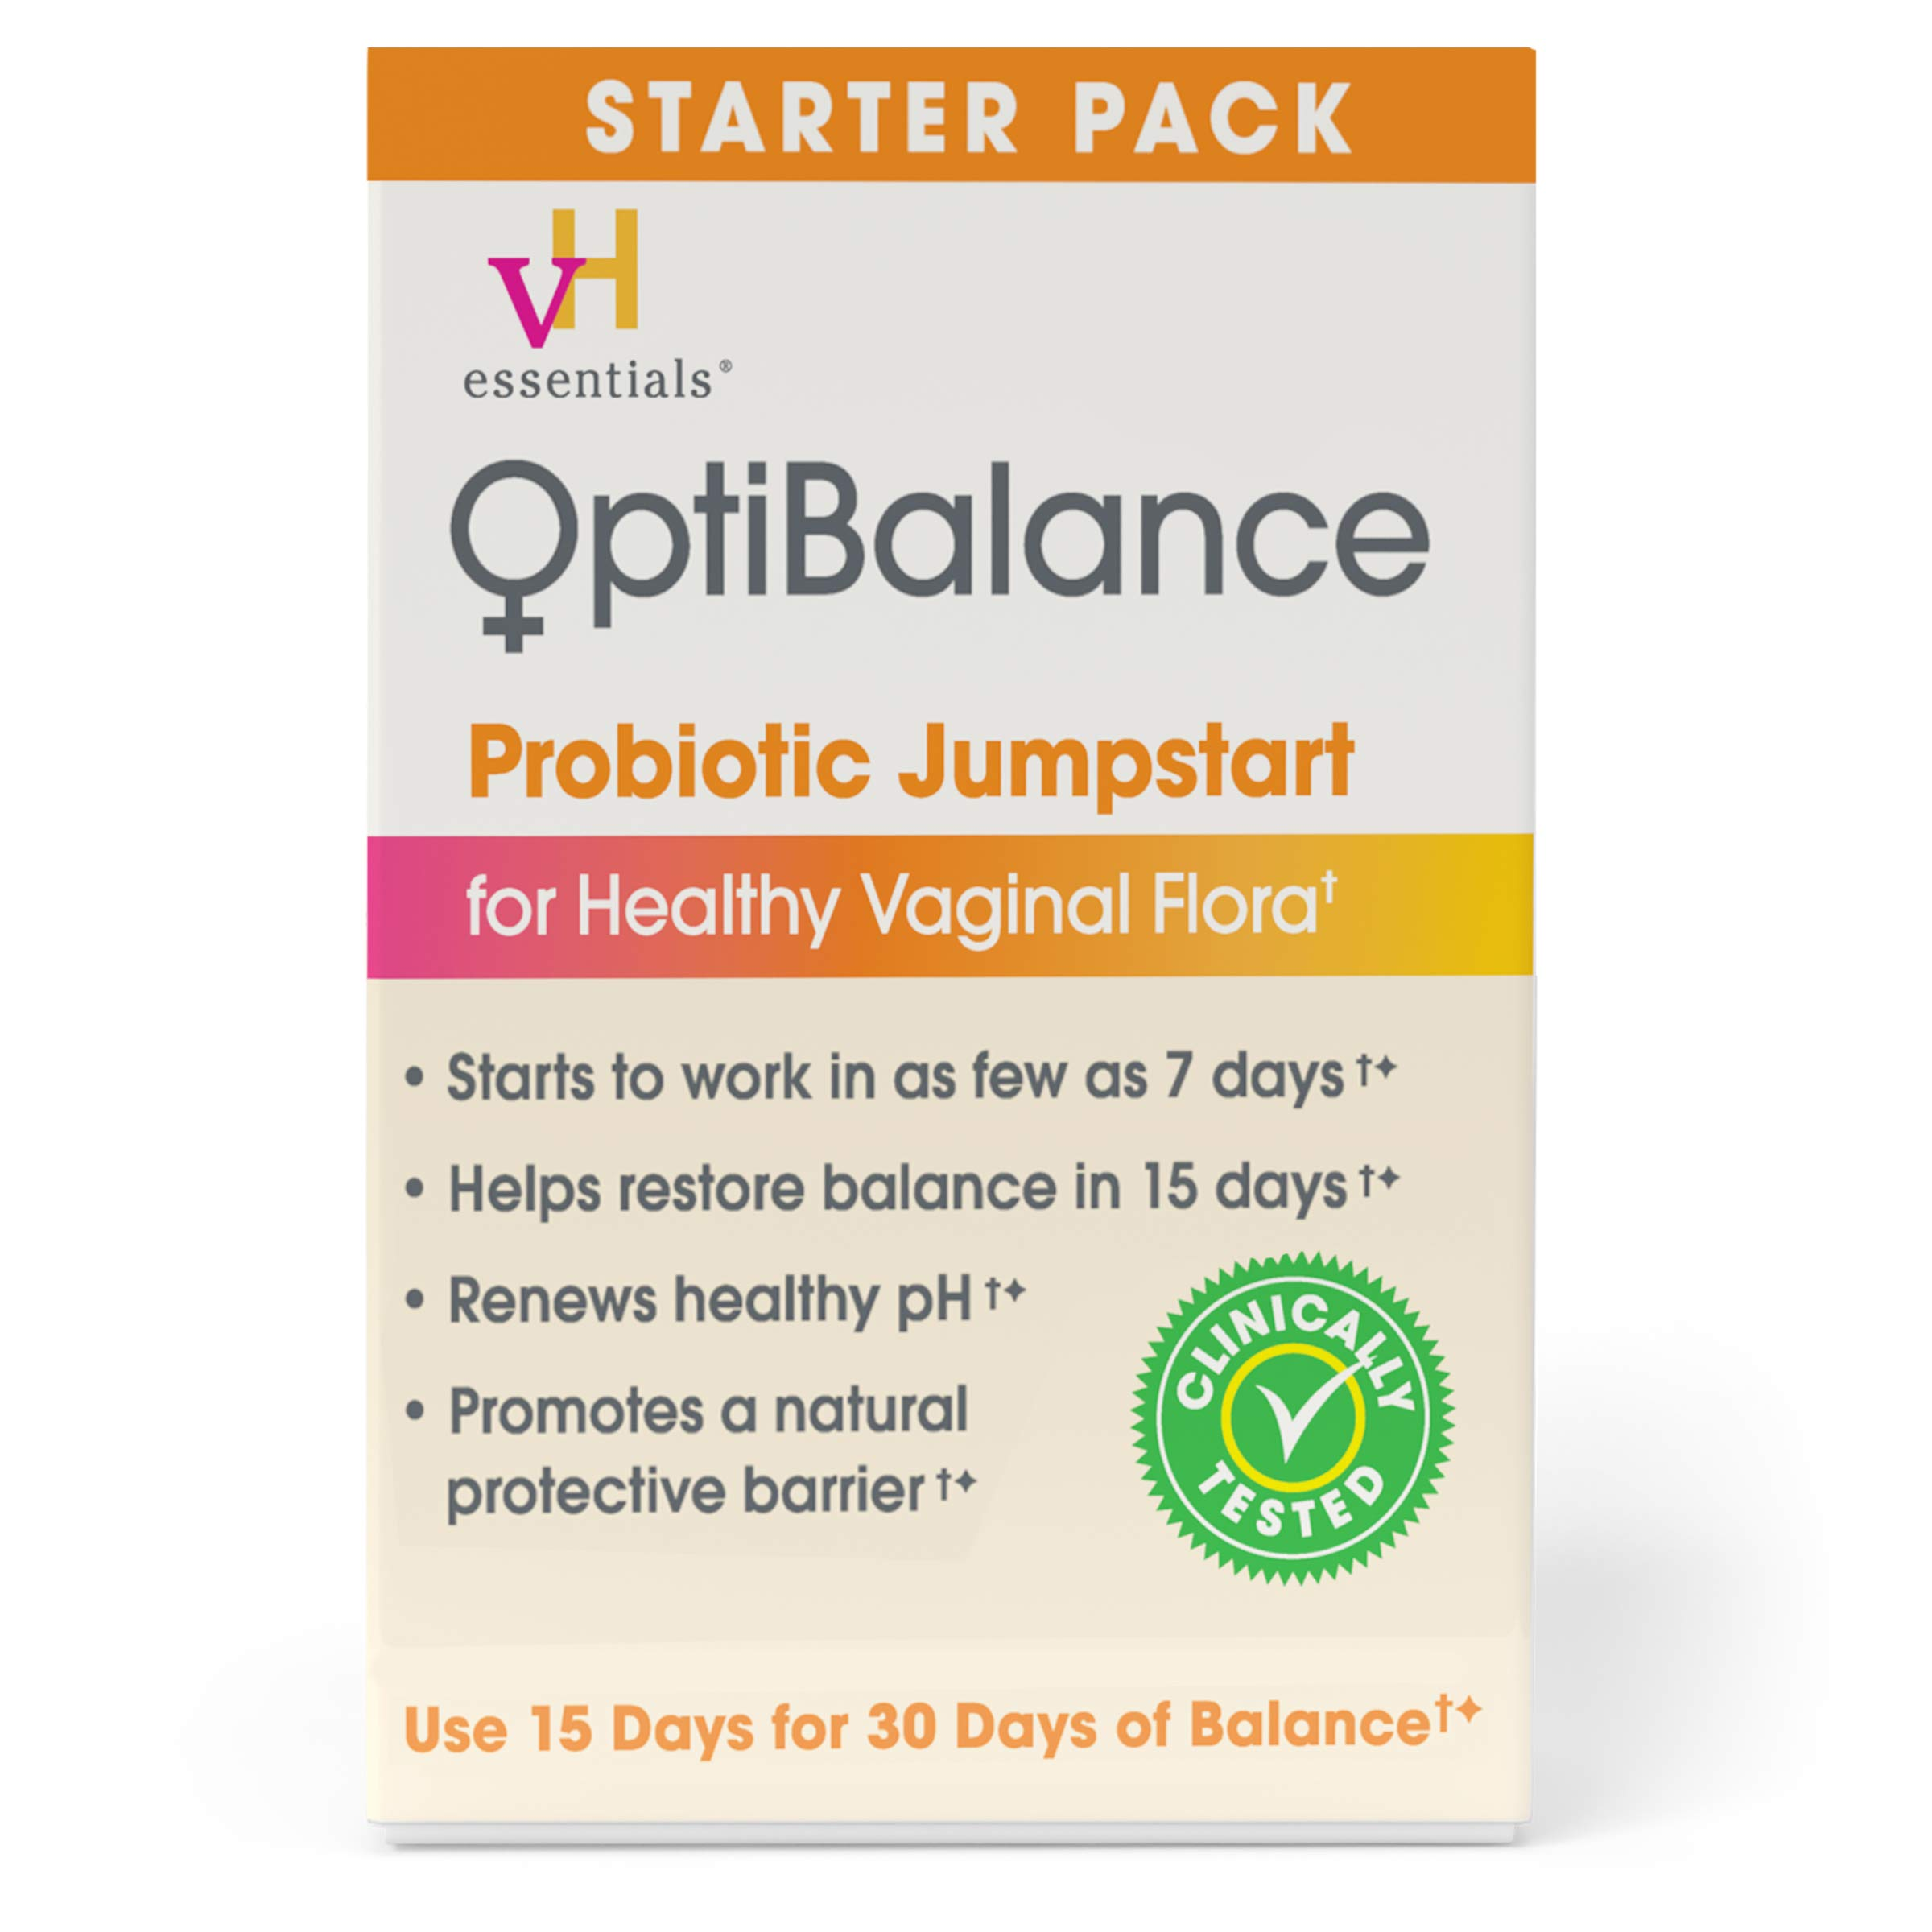 vH essentials OptiBalance Women's Probiotic Jumpstart Starter Pack for pH Balance and Vaginal Health - 20 Count